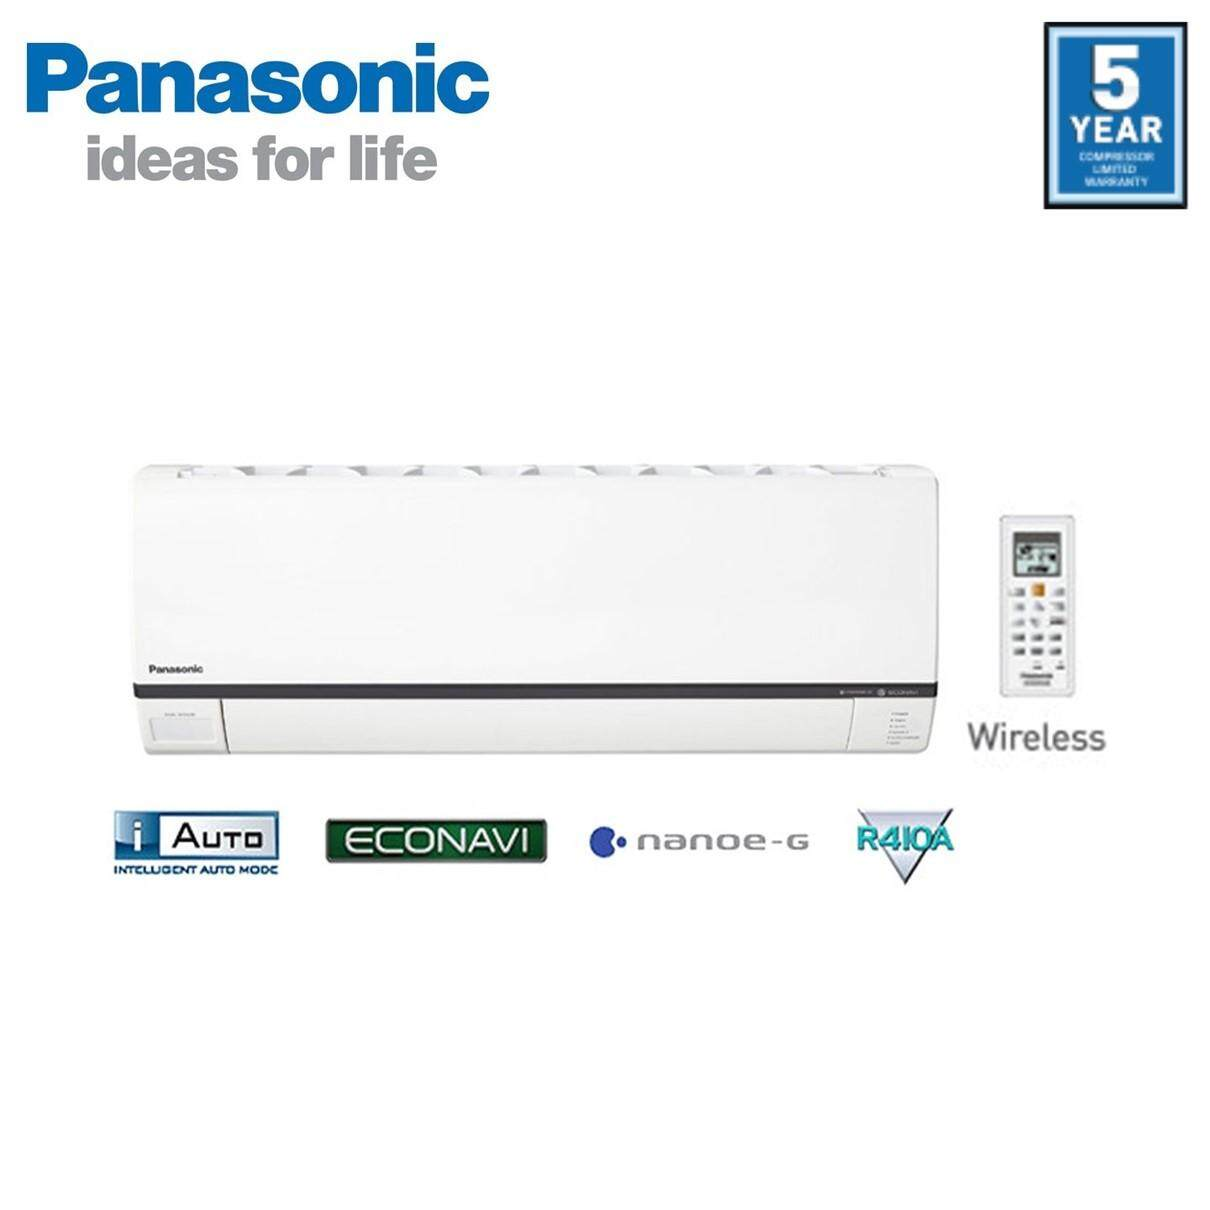 PANASONIC CS-V12RKH/CU-V12RKH 1.5HP DELUXE ECONAVI NON-INVERTER AIR CONDITIONER